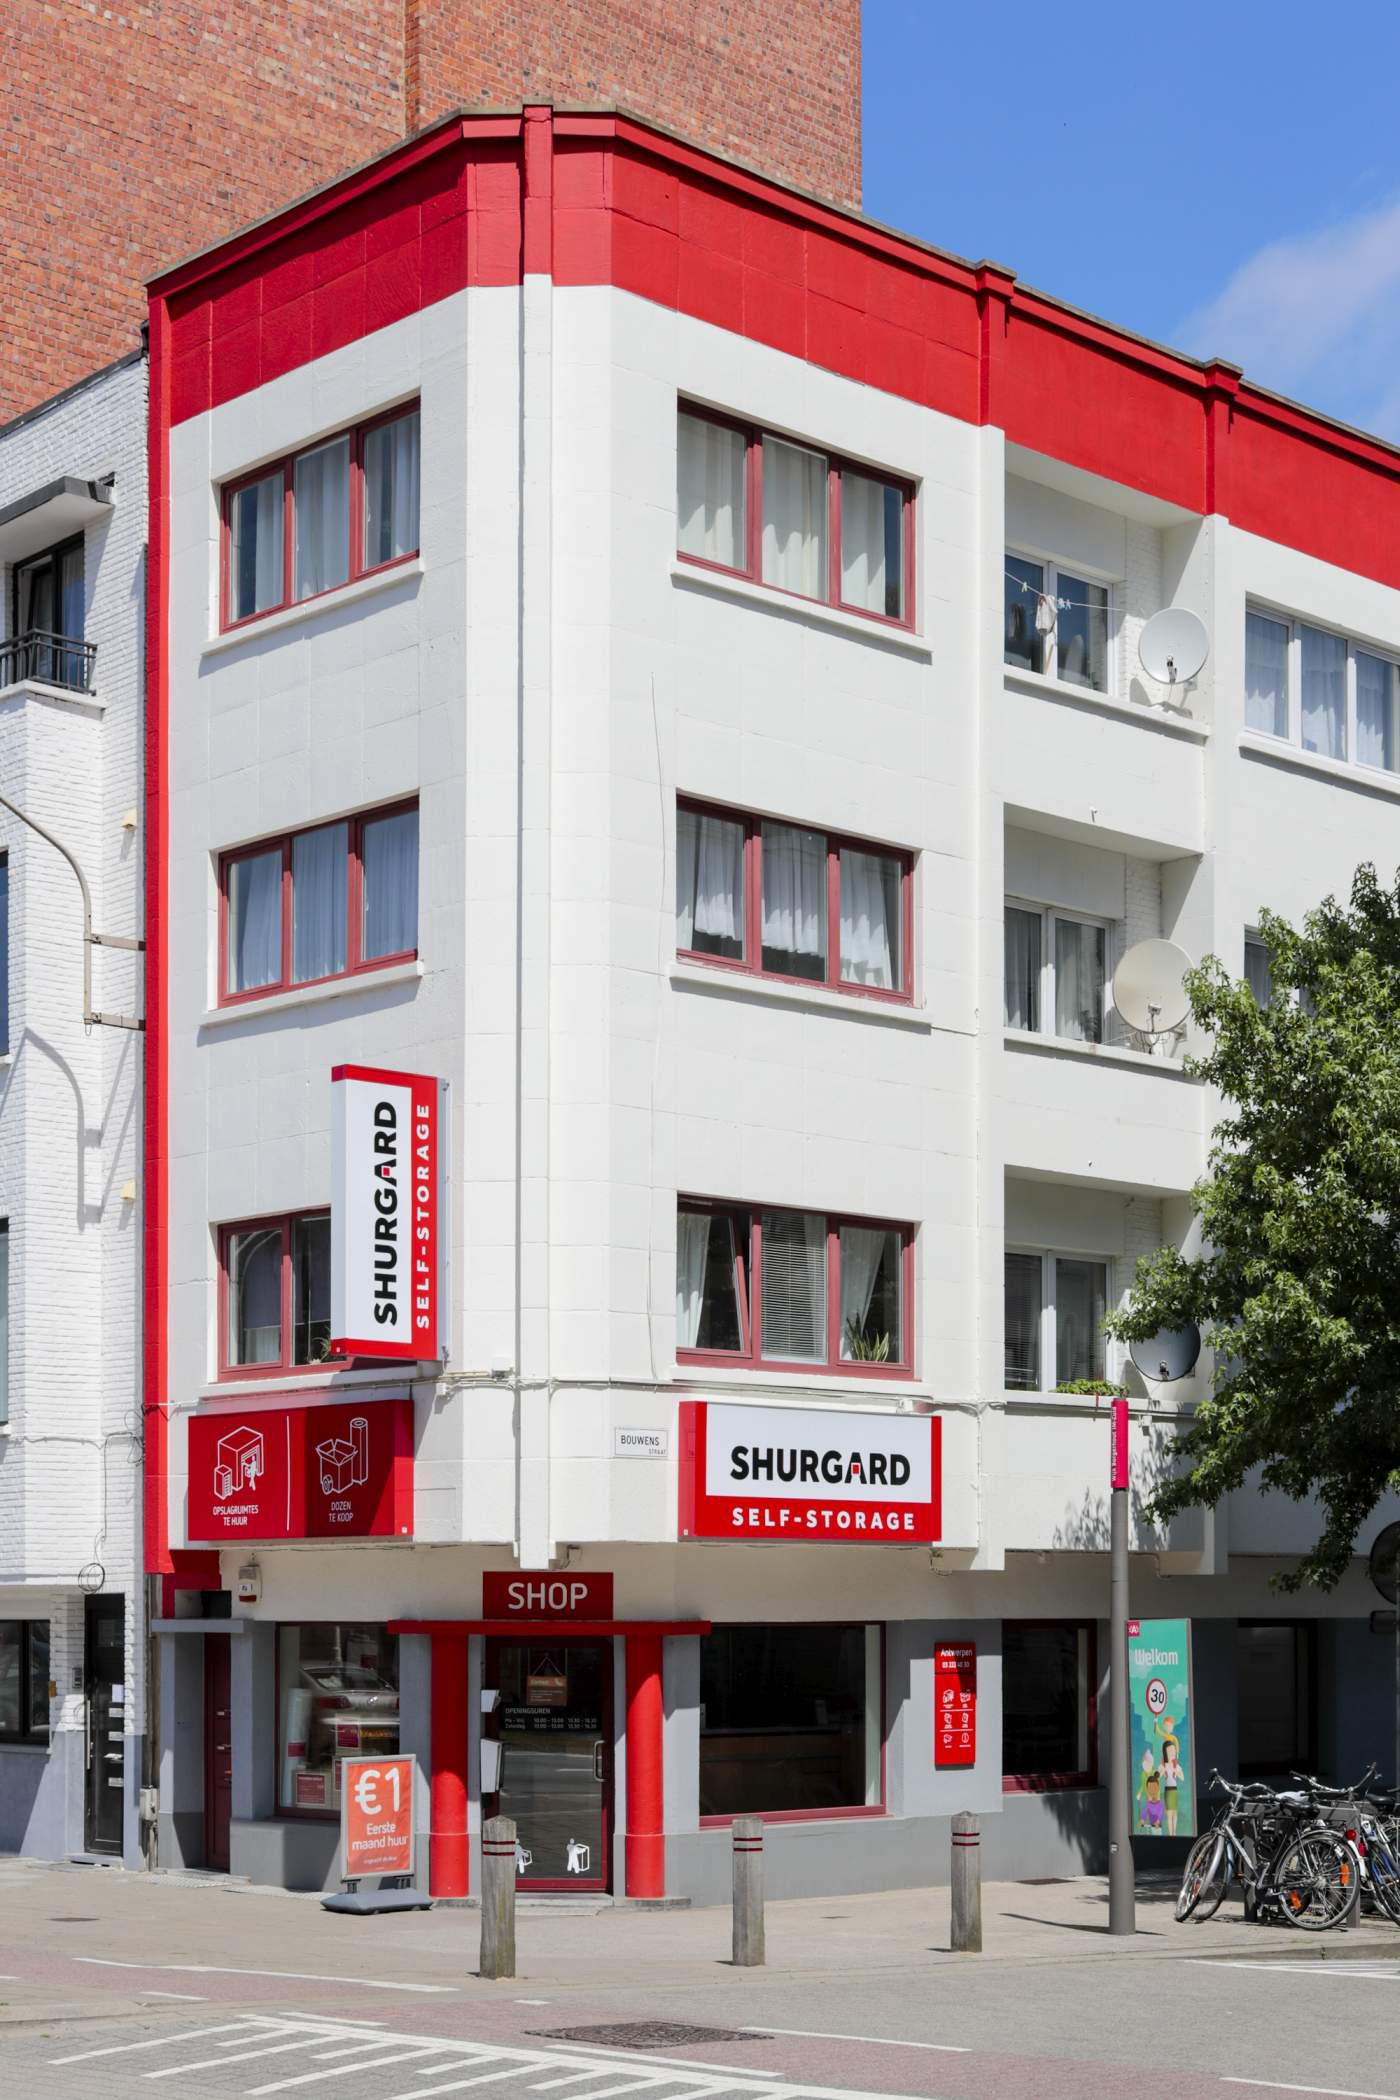 Shurgard Self-Storage Antwerpen Centrum